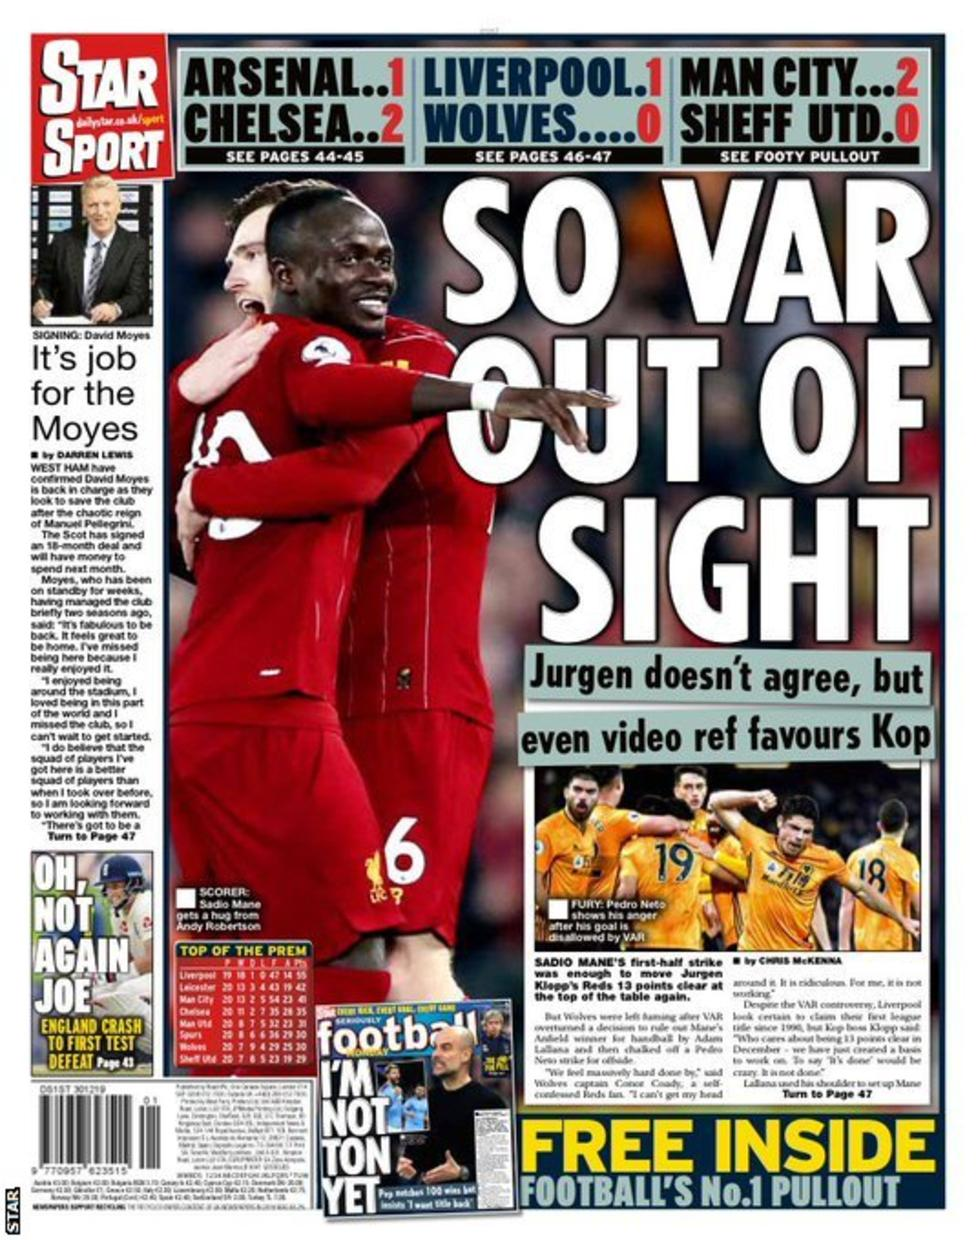 Newspaper Headline: So VAR Out Of Sight